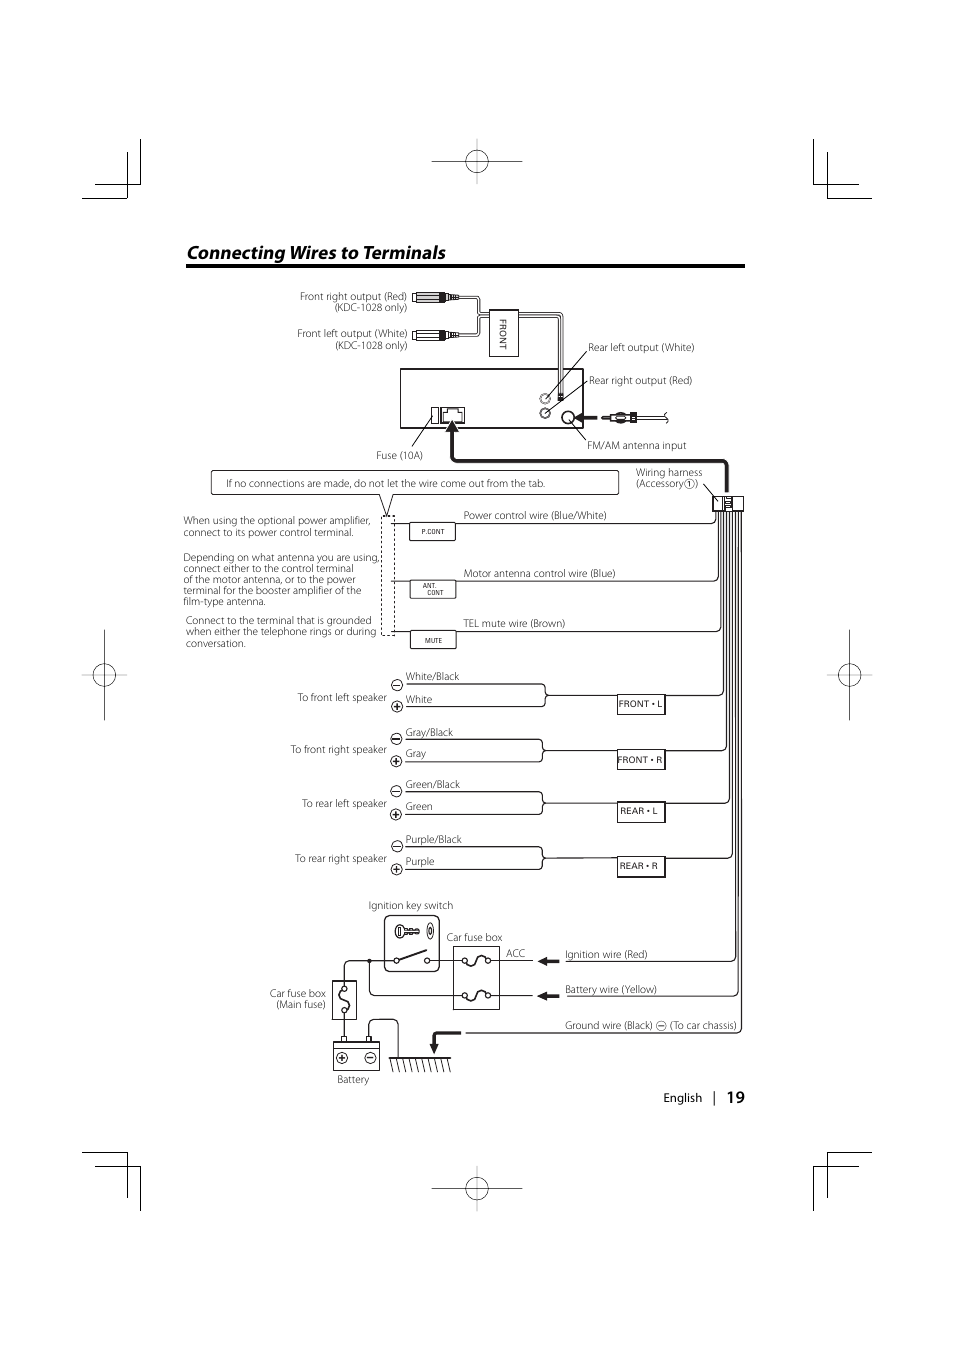 kenwood kdc 128cr page19 kenwood kdc 2019 wiring diagram kenwood wiring diagrams collection kenwood kdc-255u wiring harness diagram at gsmx.co